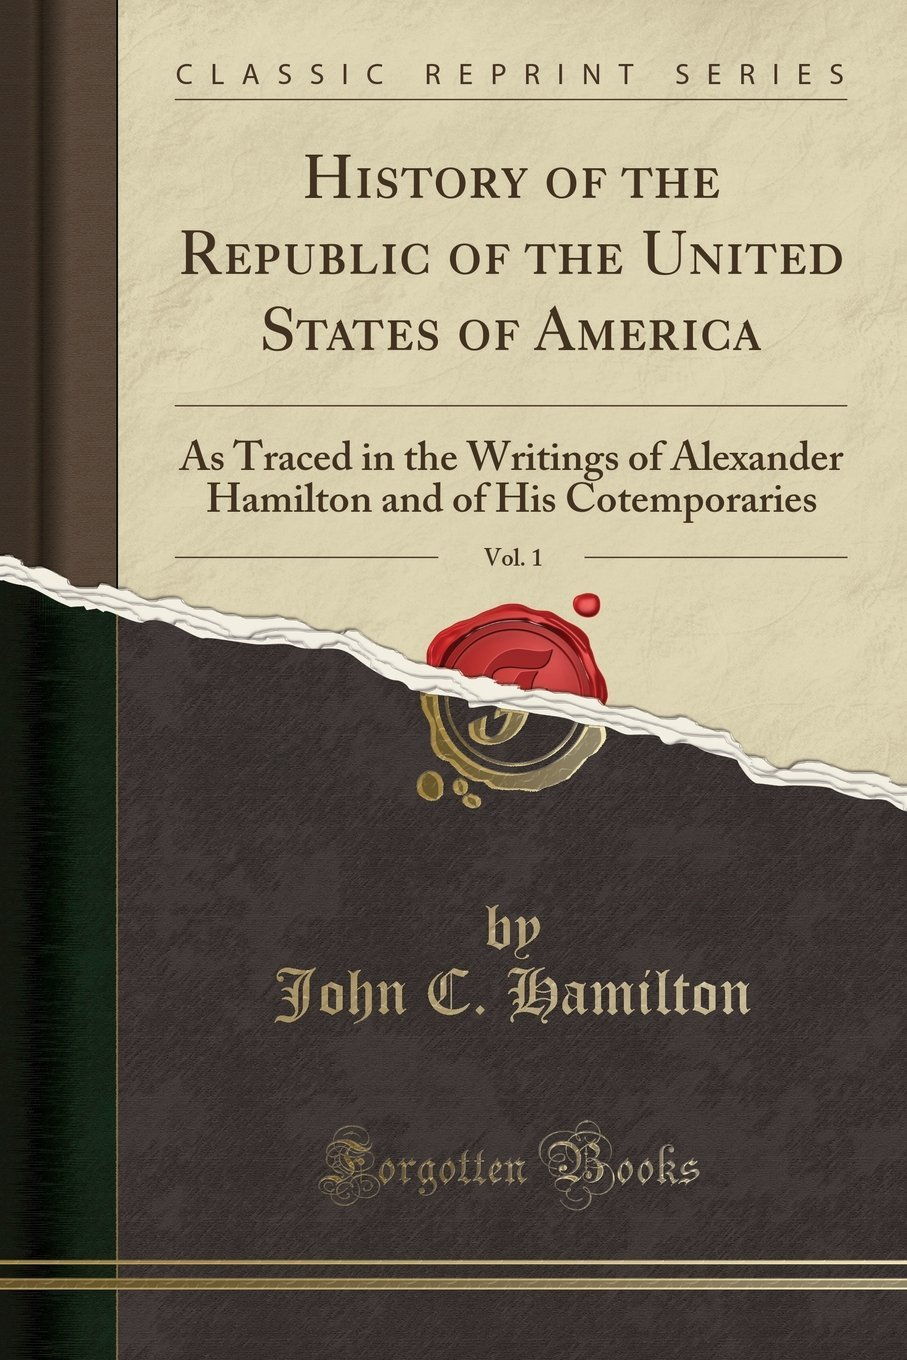 History of the Republic of the United States of America, Vol. 1: As Traced in the Writings of Alexander Hamilton and of His Cotemporaries (Classic Reprint) ePub fb2 ebook